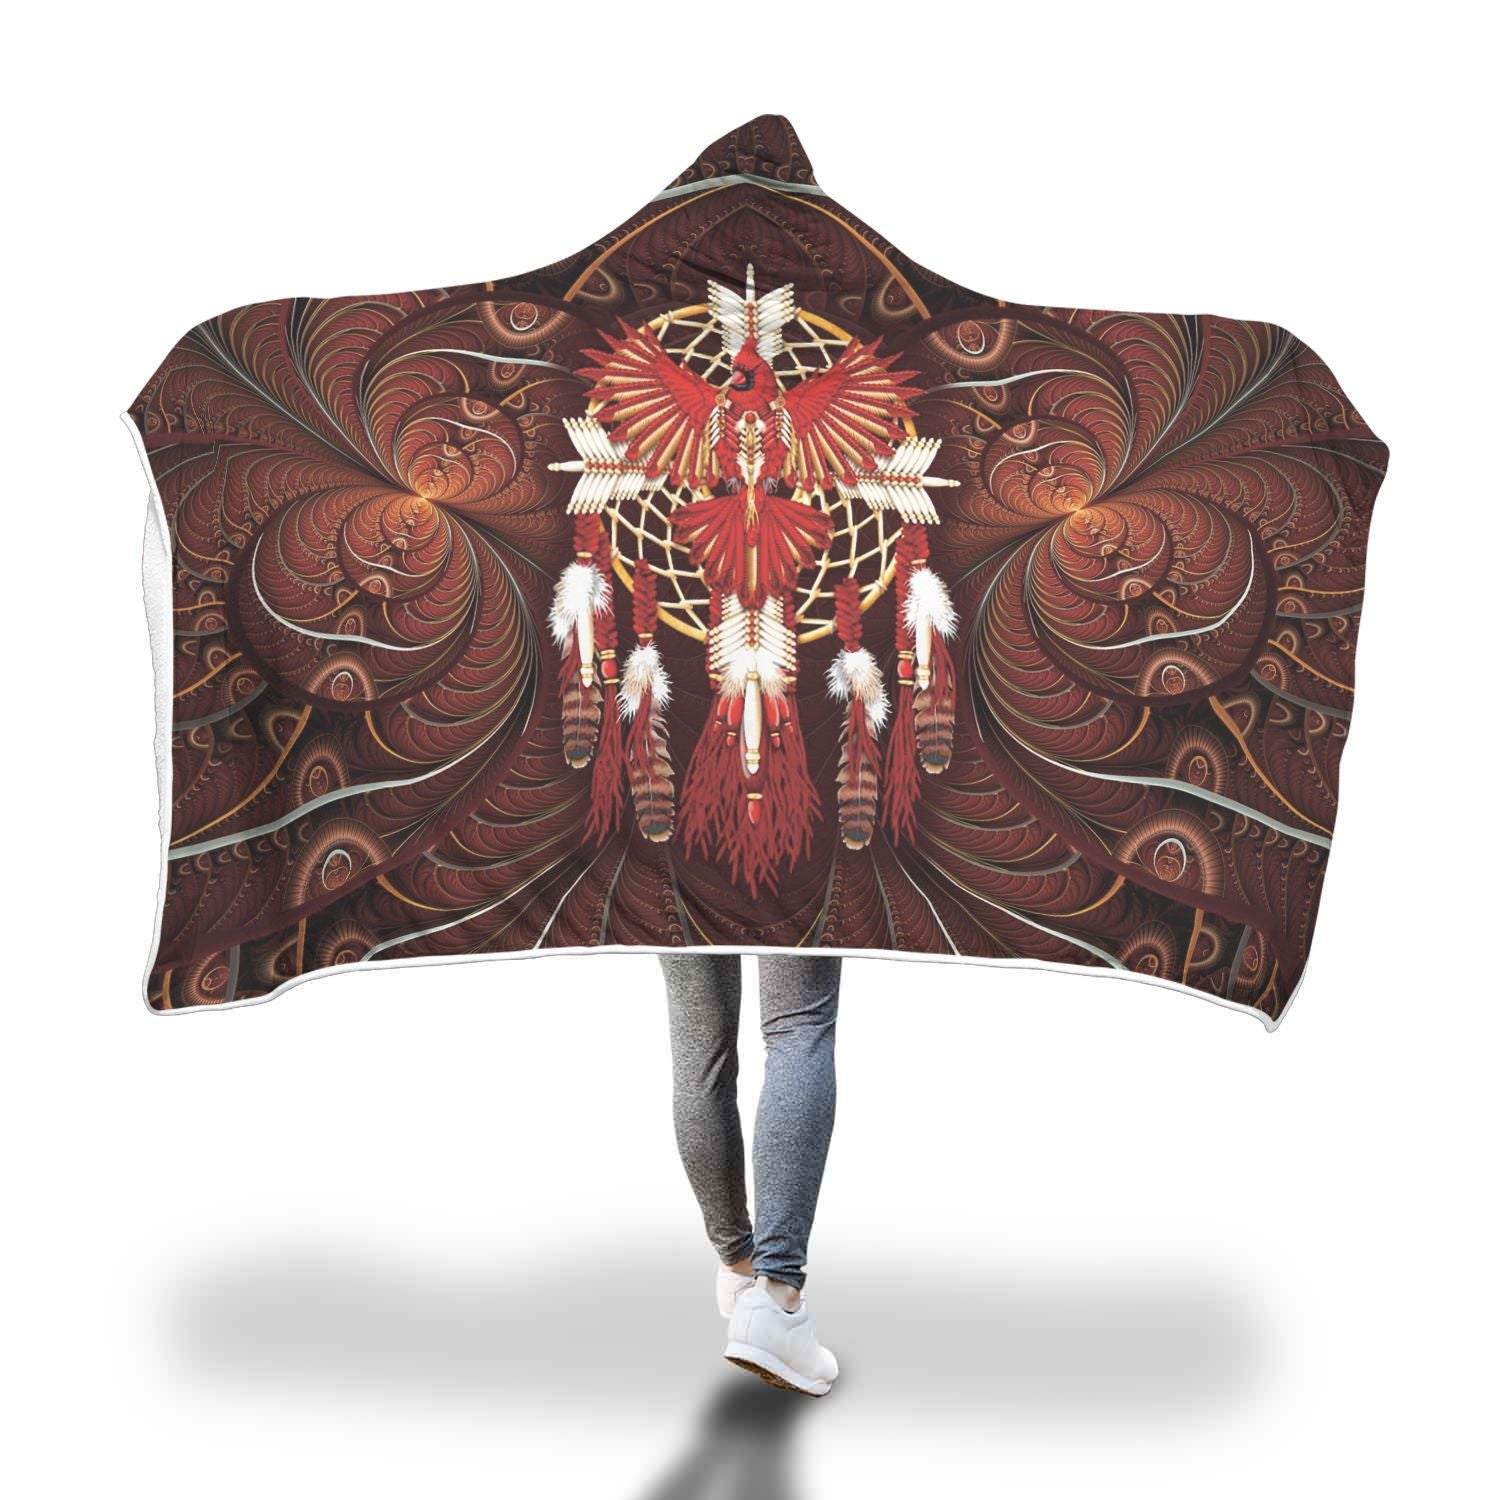 Buy DREAMCATCHER EAGLE NATIVE hooded blanket. - Familyloves hoodies t-shirt jacket mug cheapest free shipping 50% off